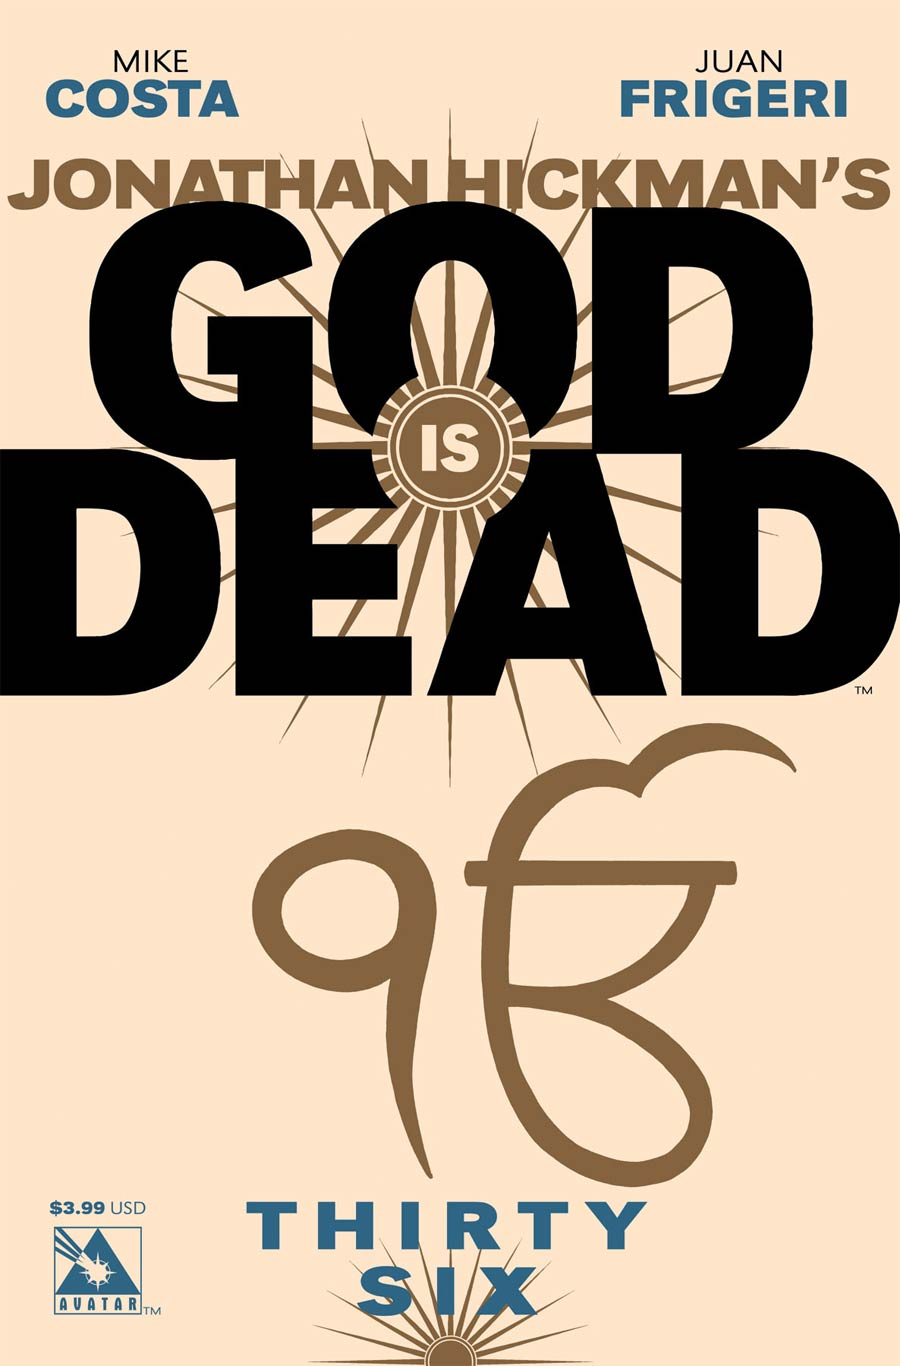 Enlarge View